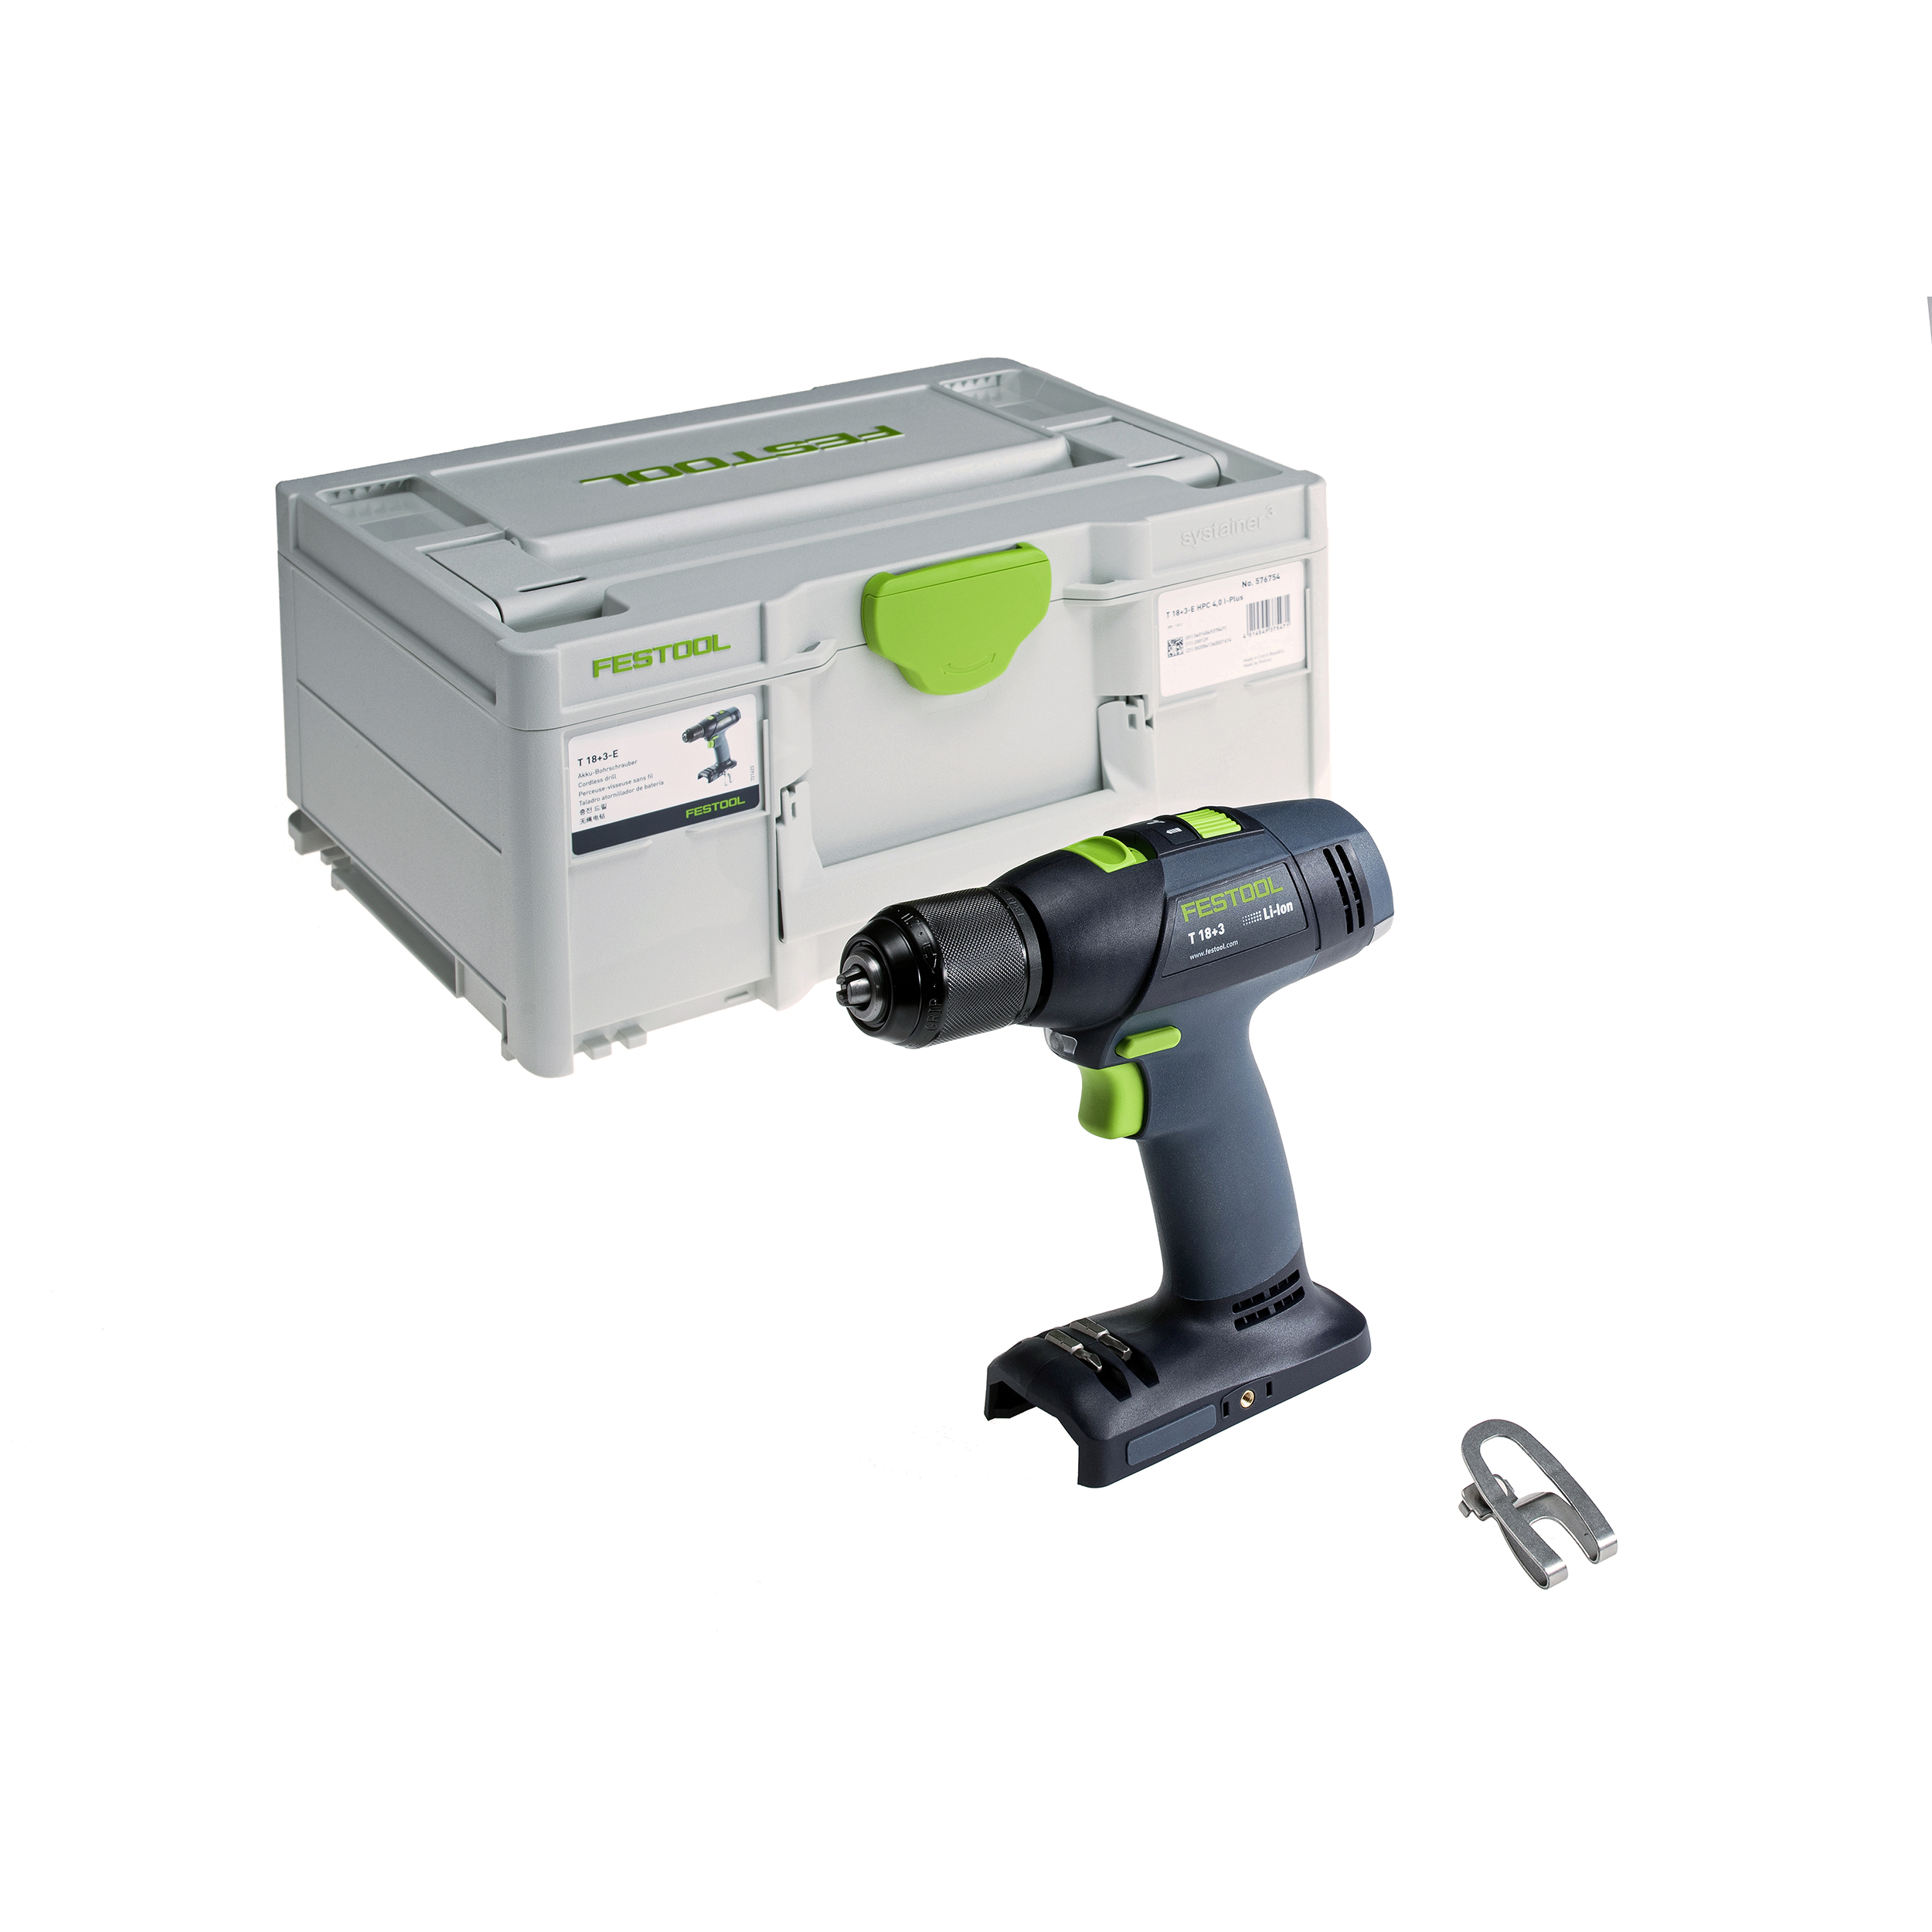 T18 Easy Cordless Drill Basic - Tool Only